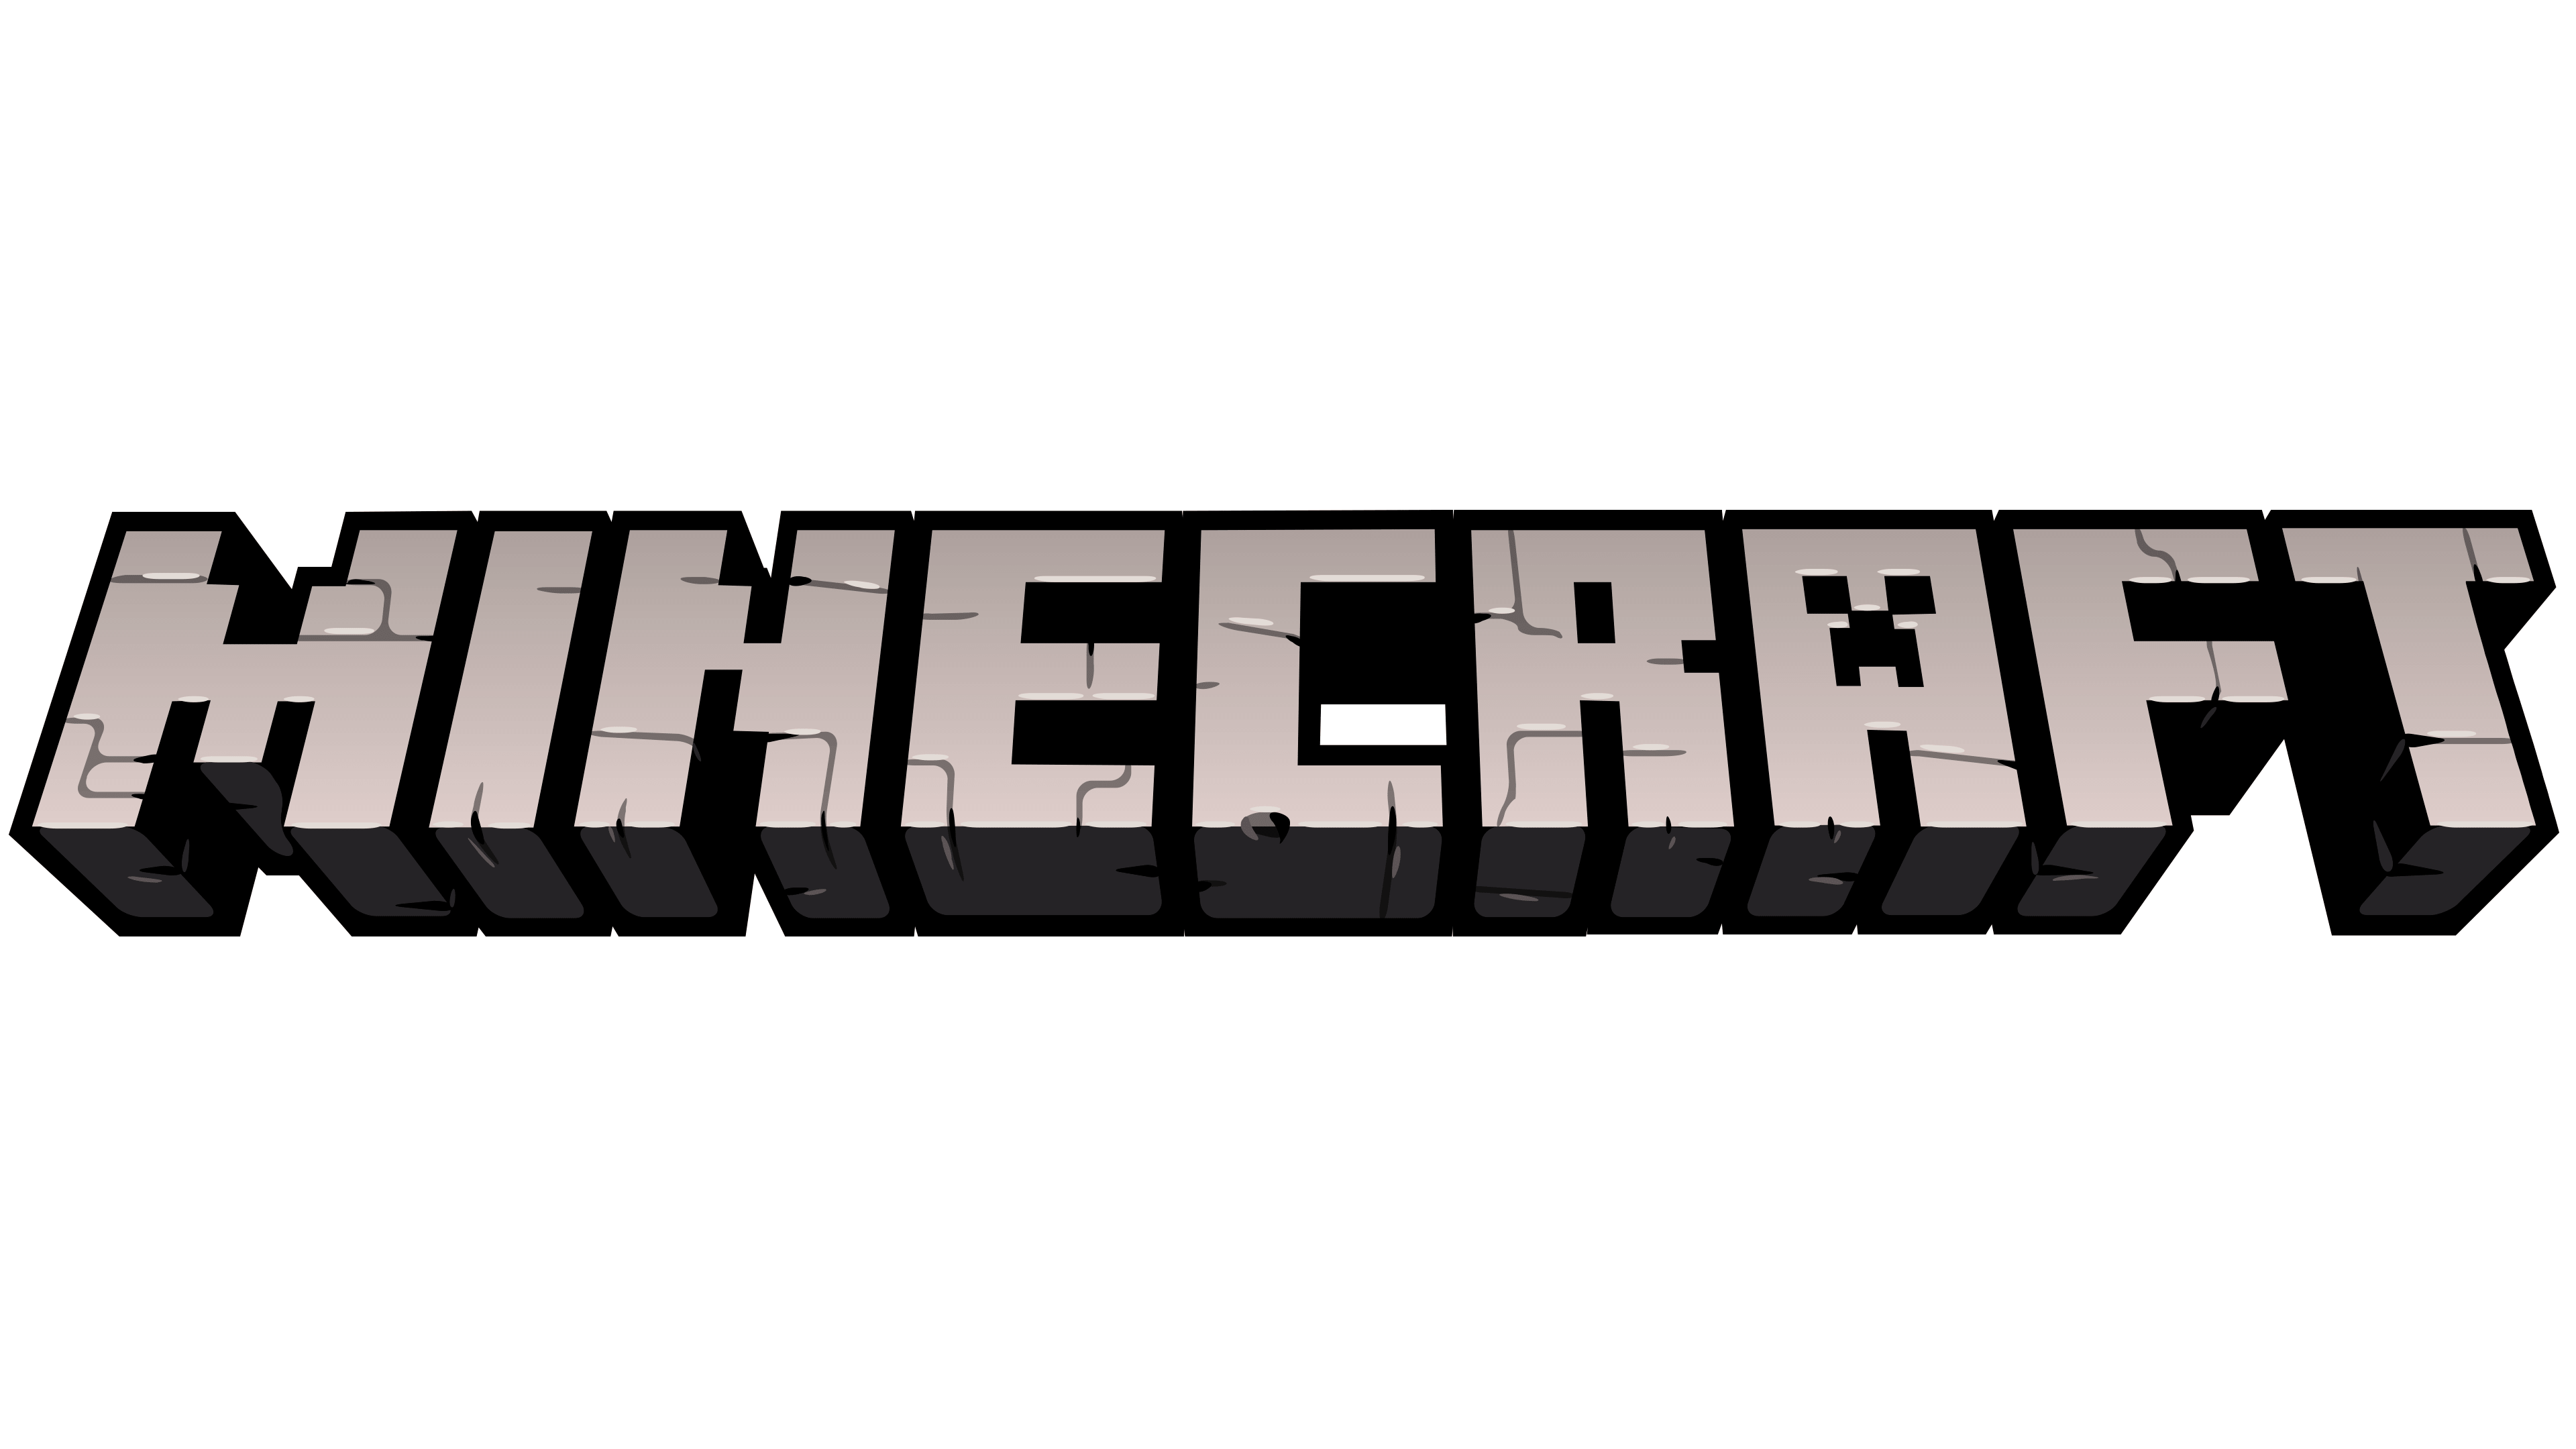 Minecraft Logo The Most Famous Brands And Company Logos In The World